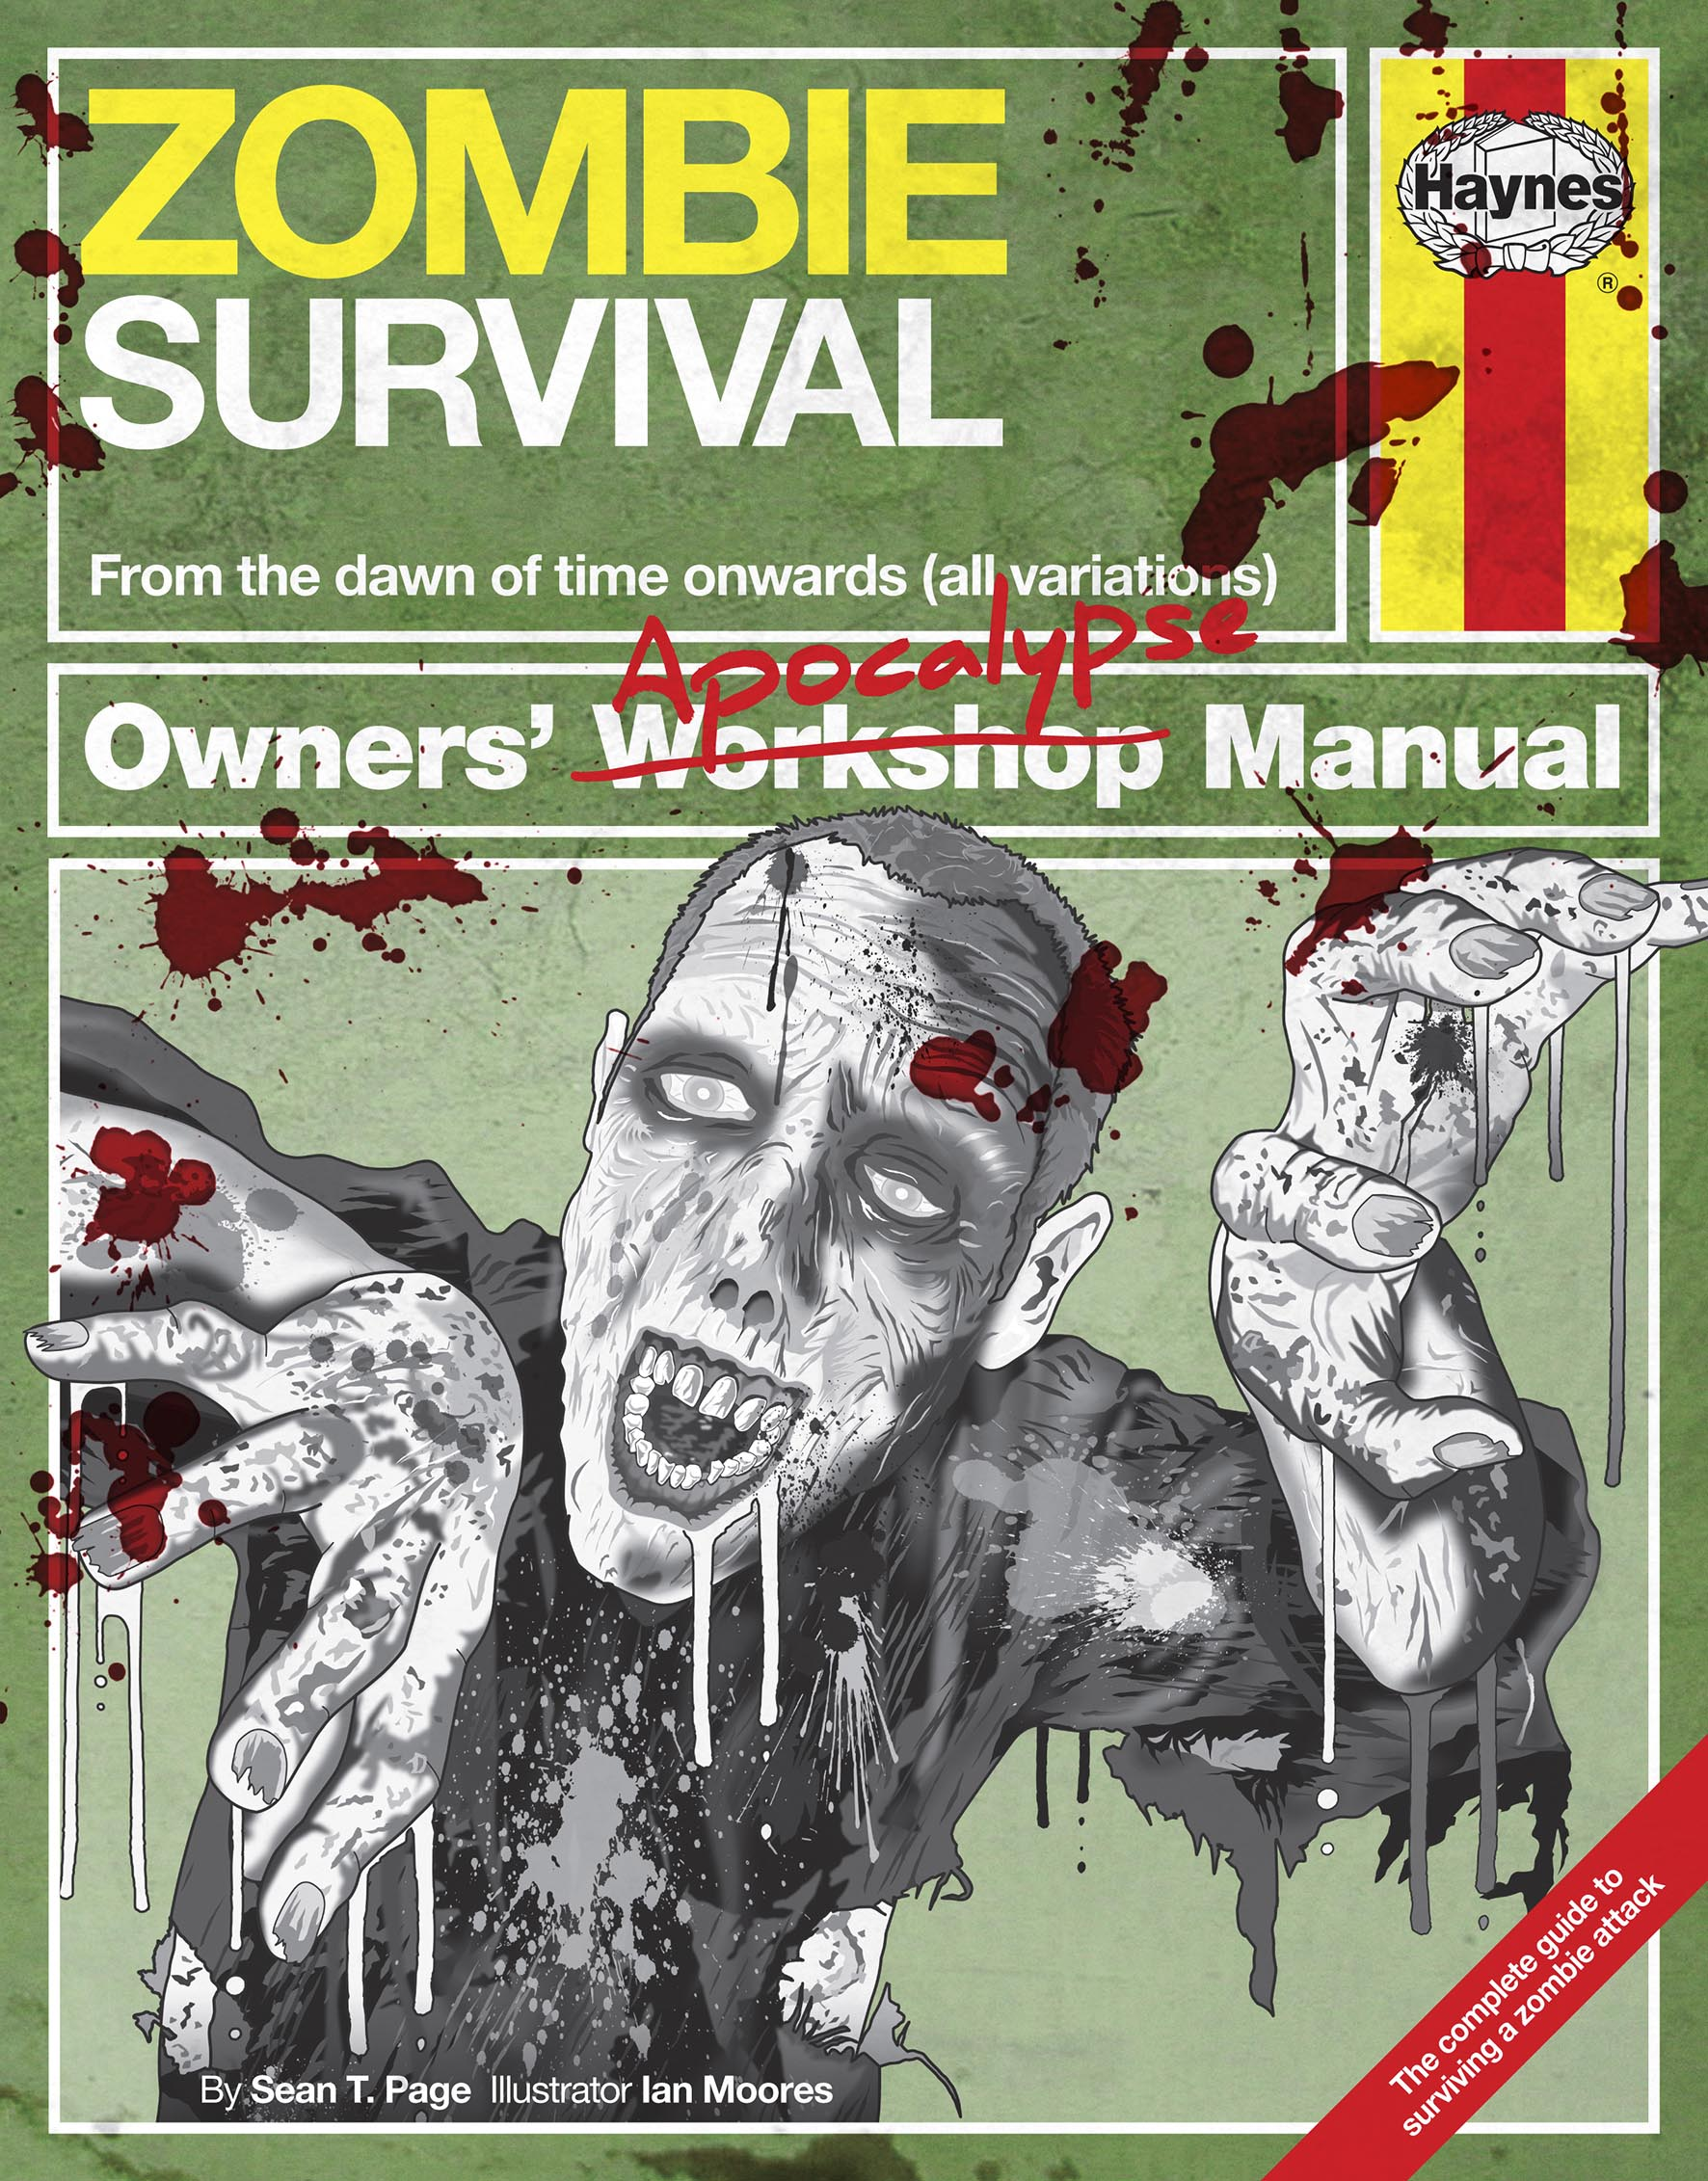 Support more free survival info by following us on